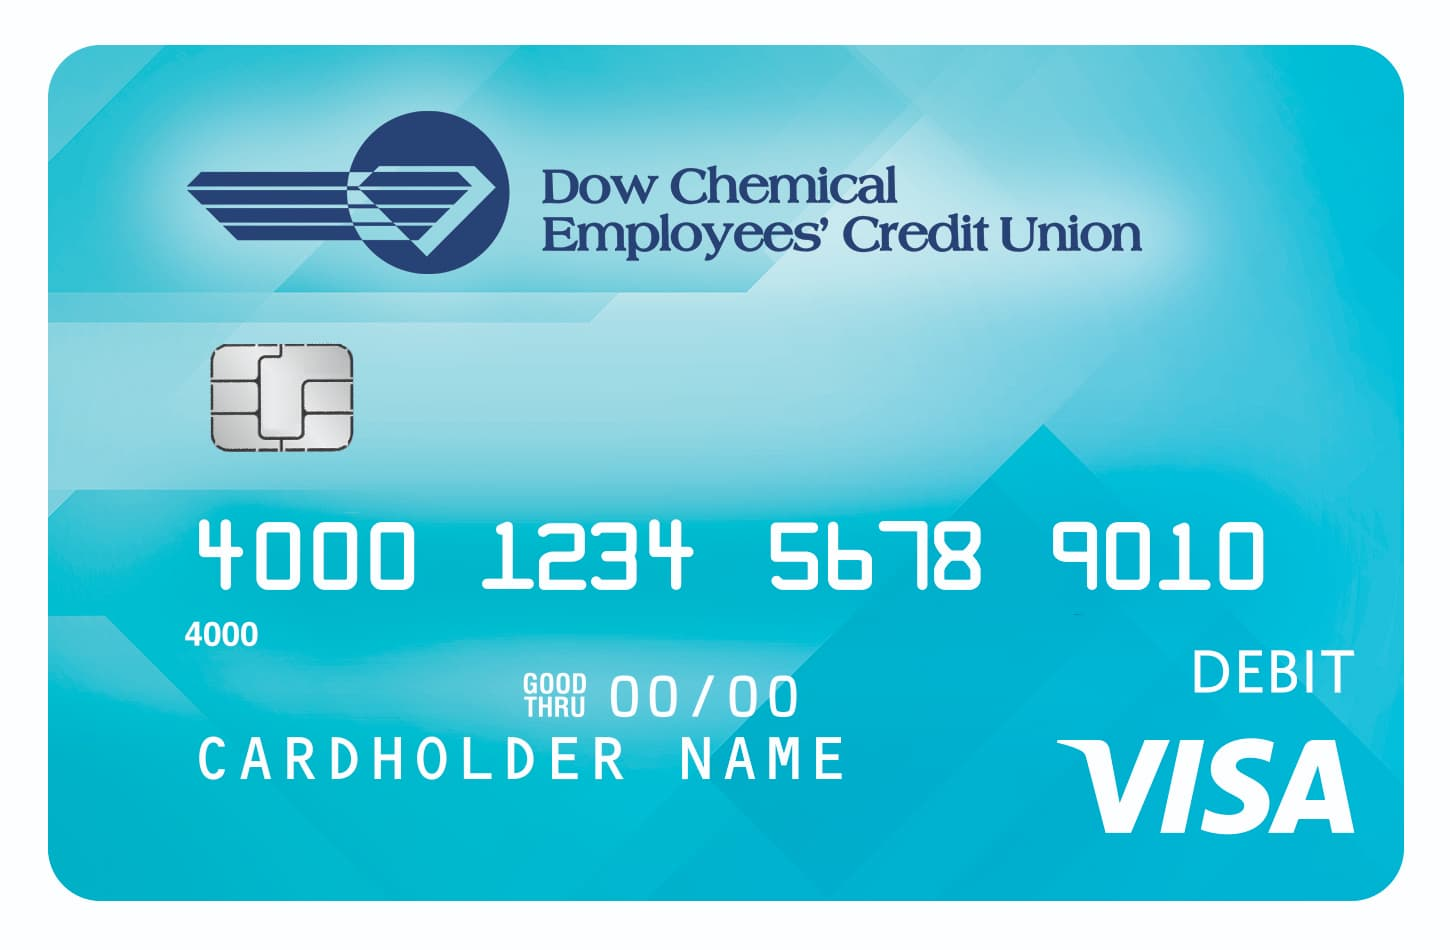 An image of the new blue DCECU Visa Debit card